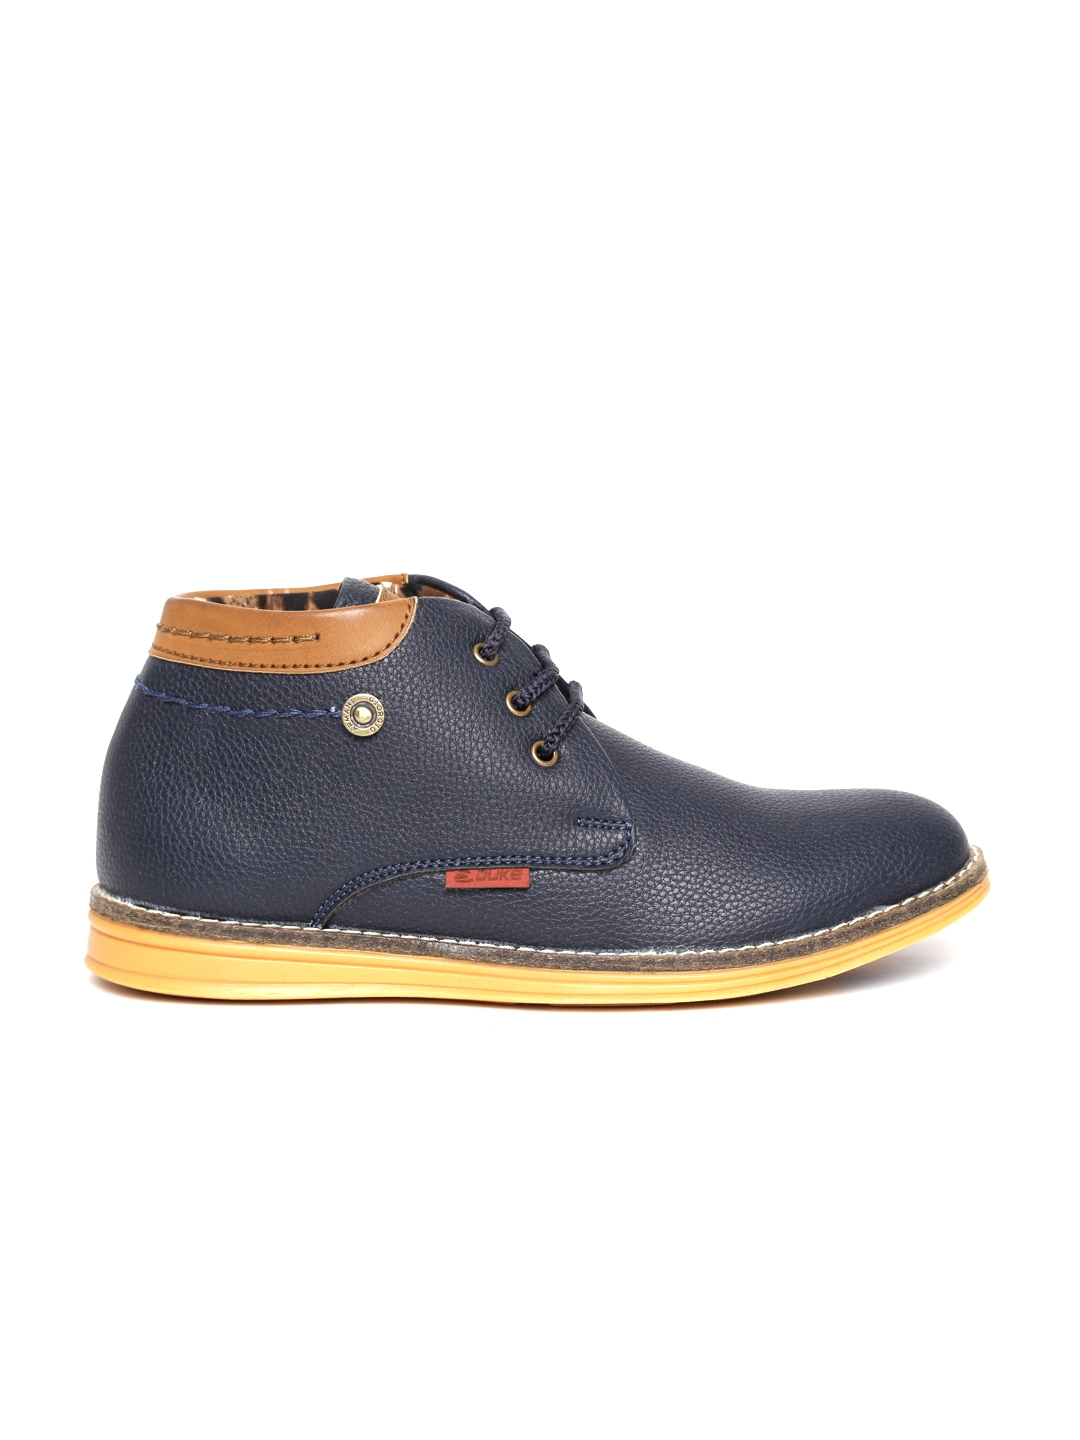 Shop for men's casual and slip on shoes at ECCO® official online store. Find the best men's casual shoes, moccasins, loafers, slip on sneakers, dress shoes, business shoes & more. Free Standard Shipping on orders above $!